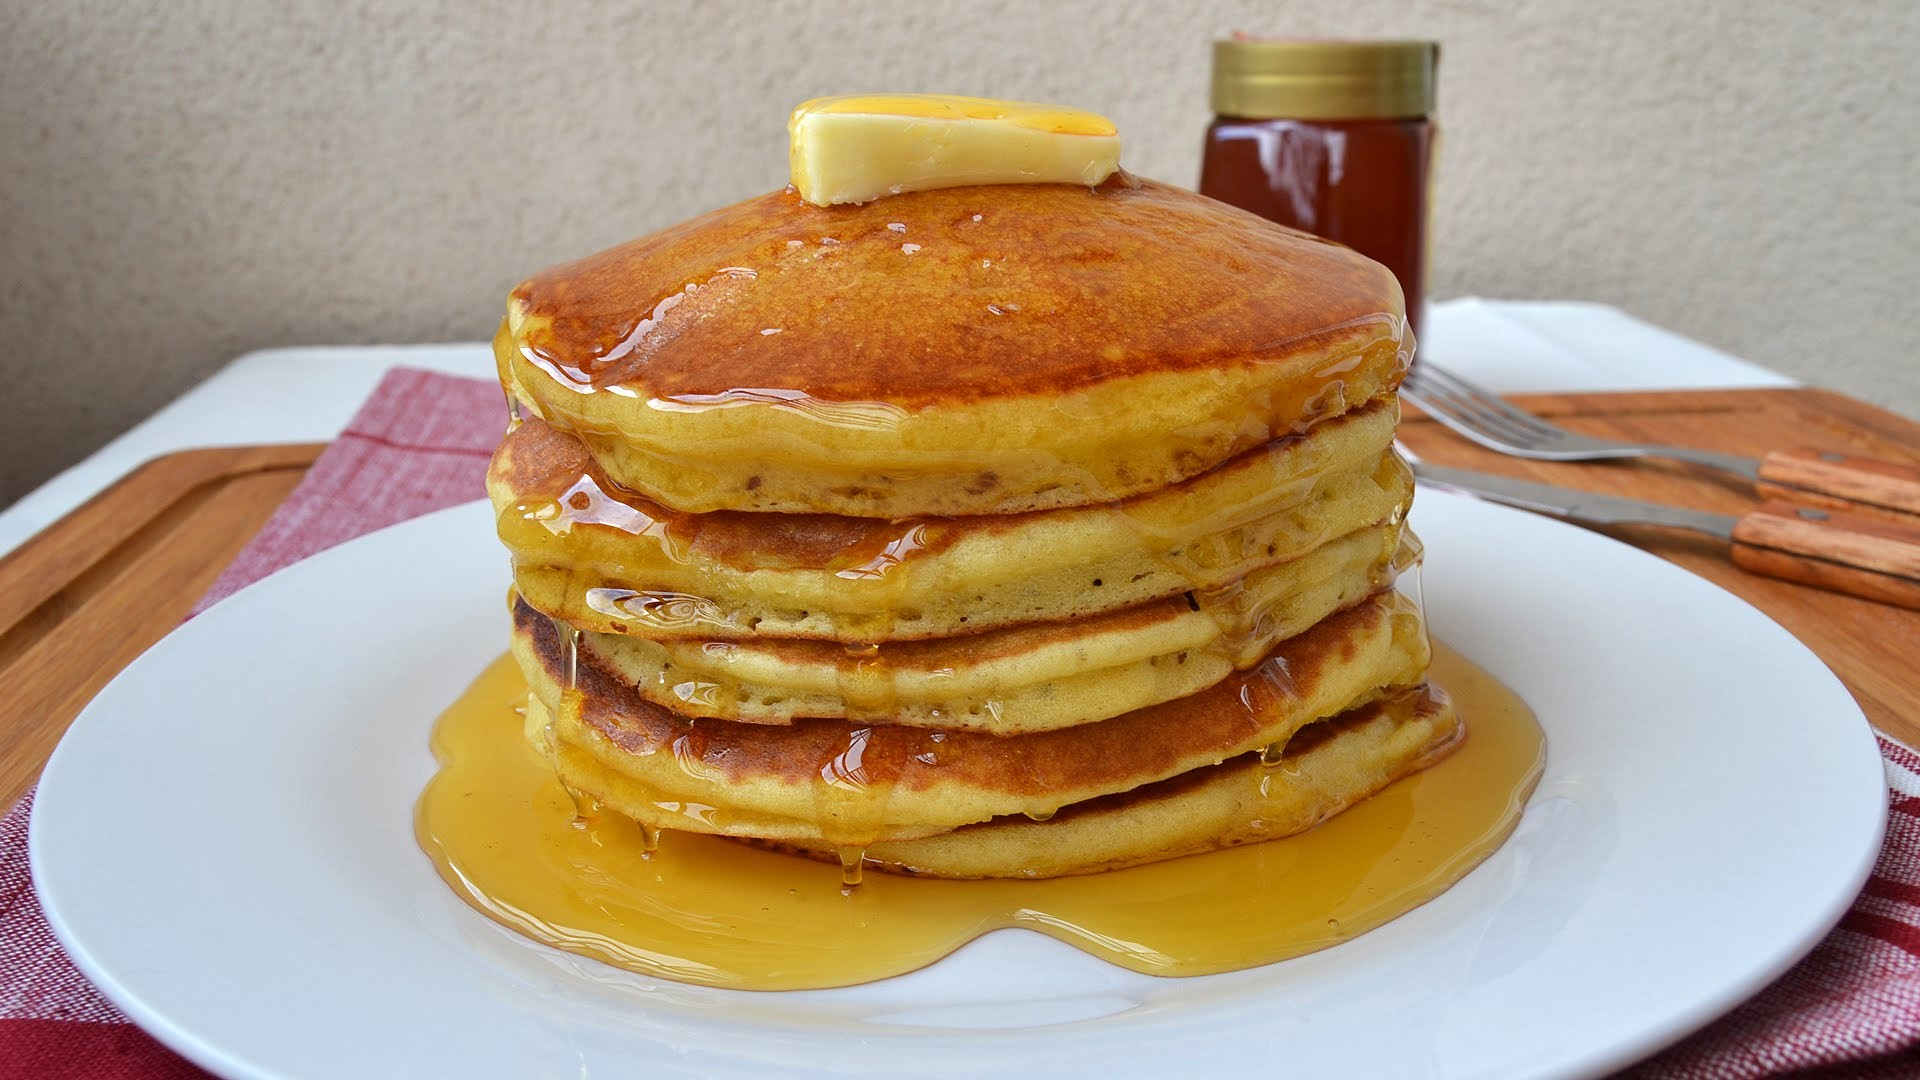 How to Make American Pancakes - Easy Homemade Pancake Recipe from Scratch